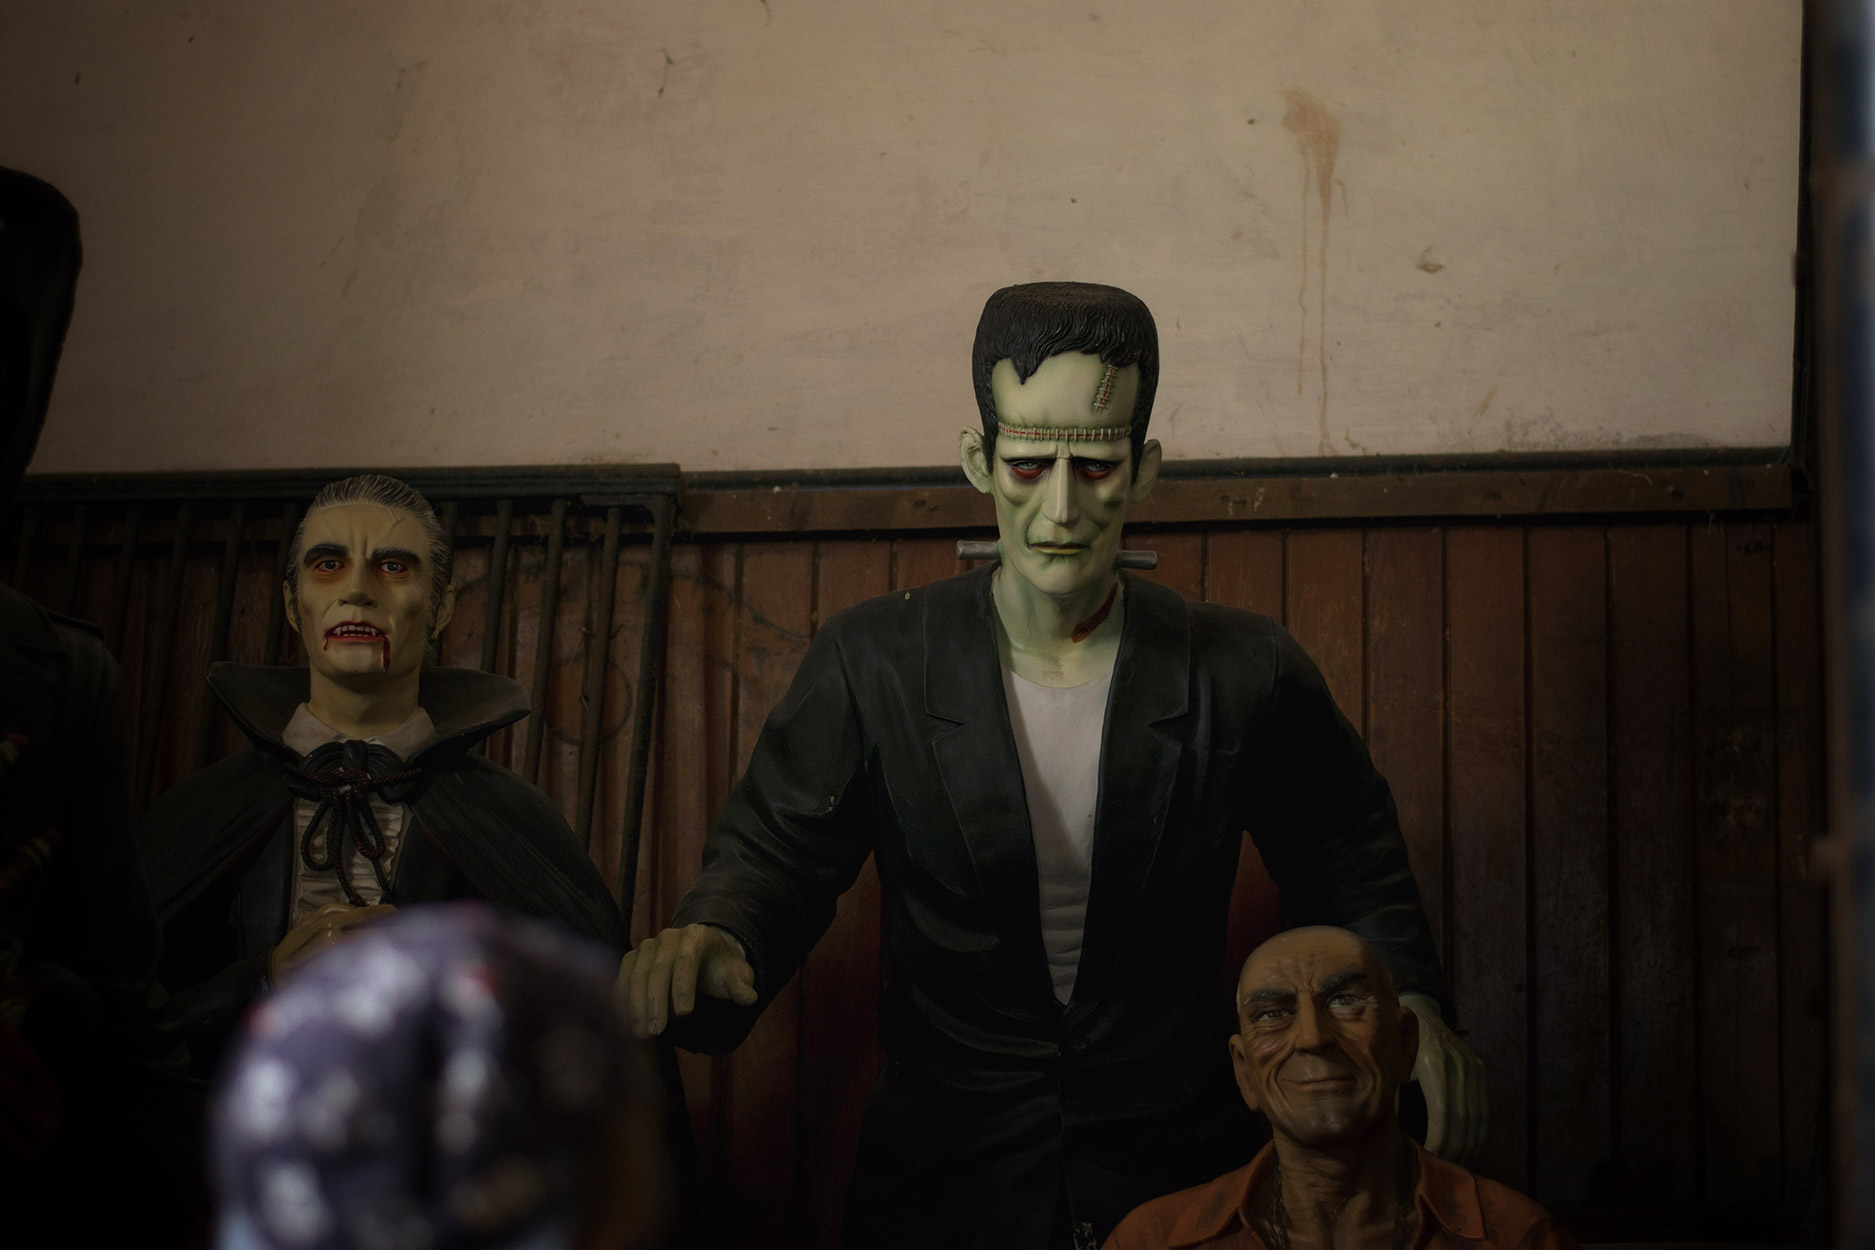 Halloween models such as Frankenstein at Tredegar House, National Trust in Newport, Wales